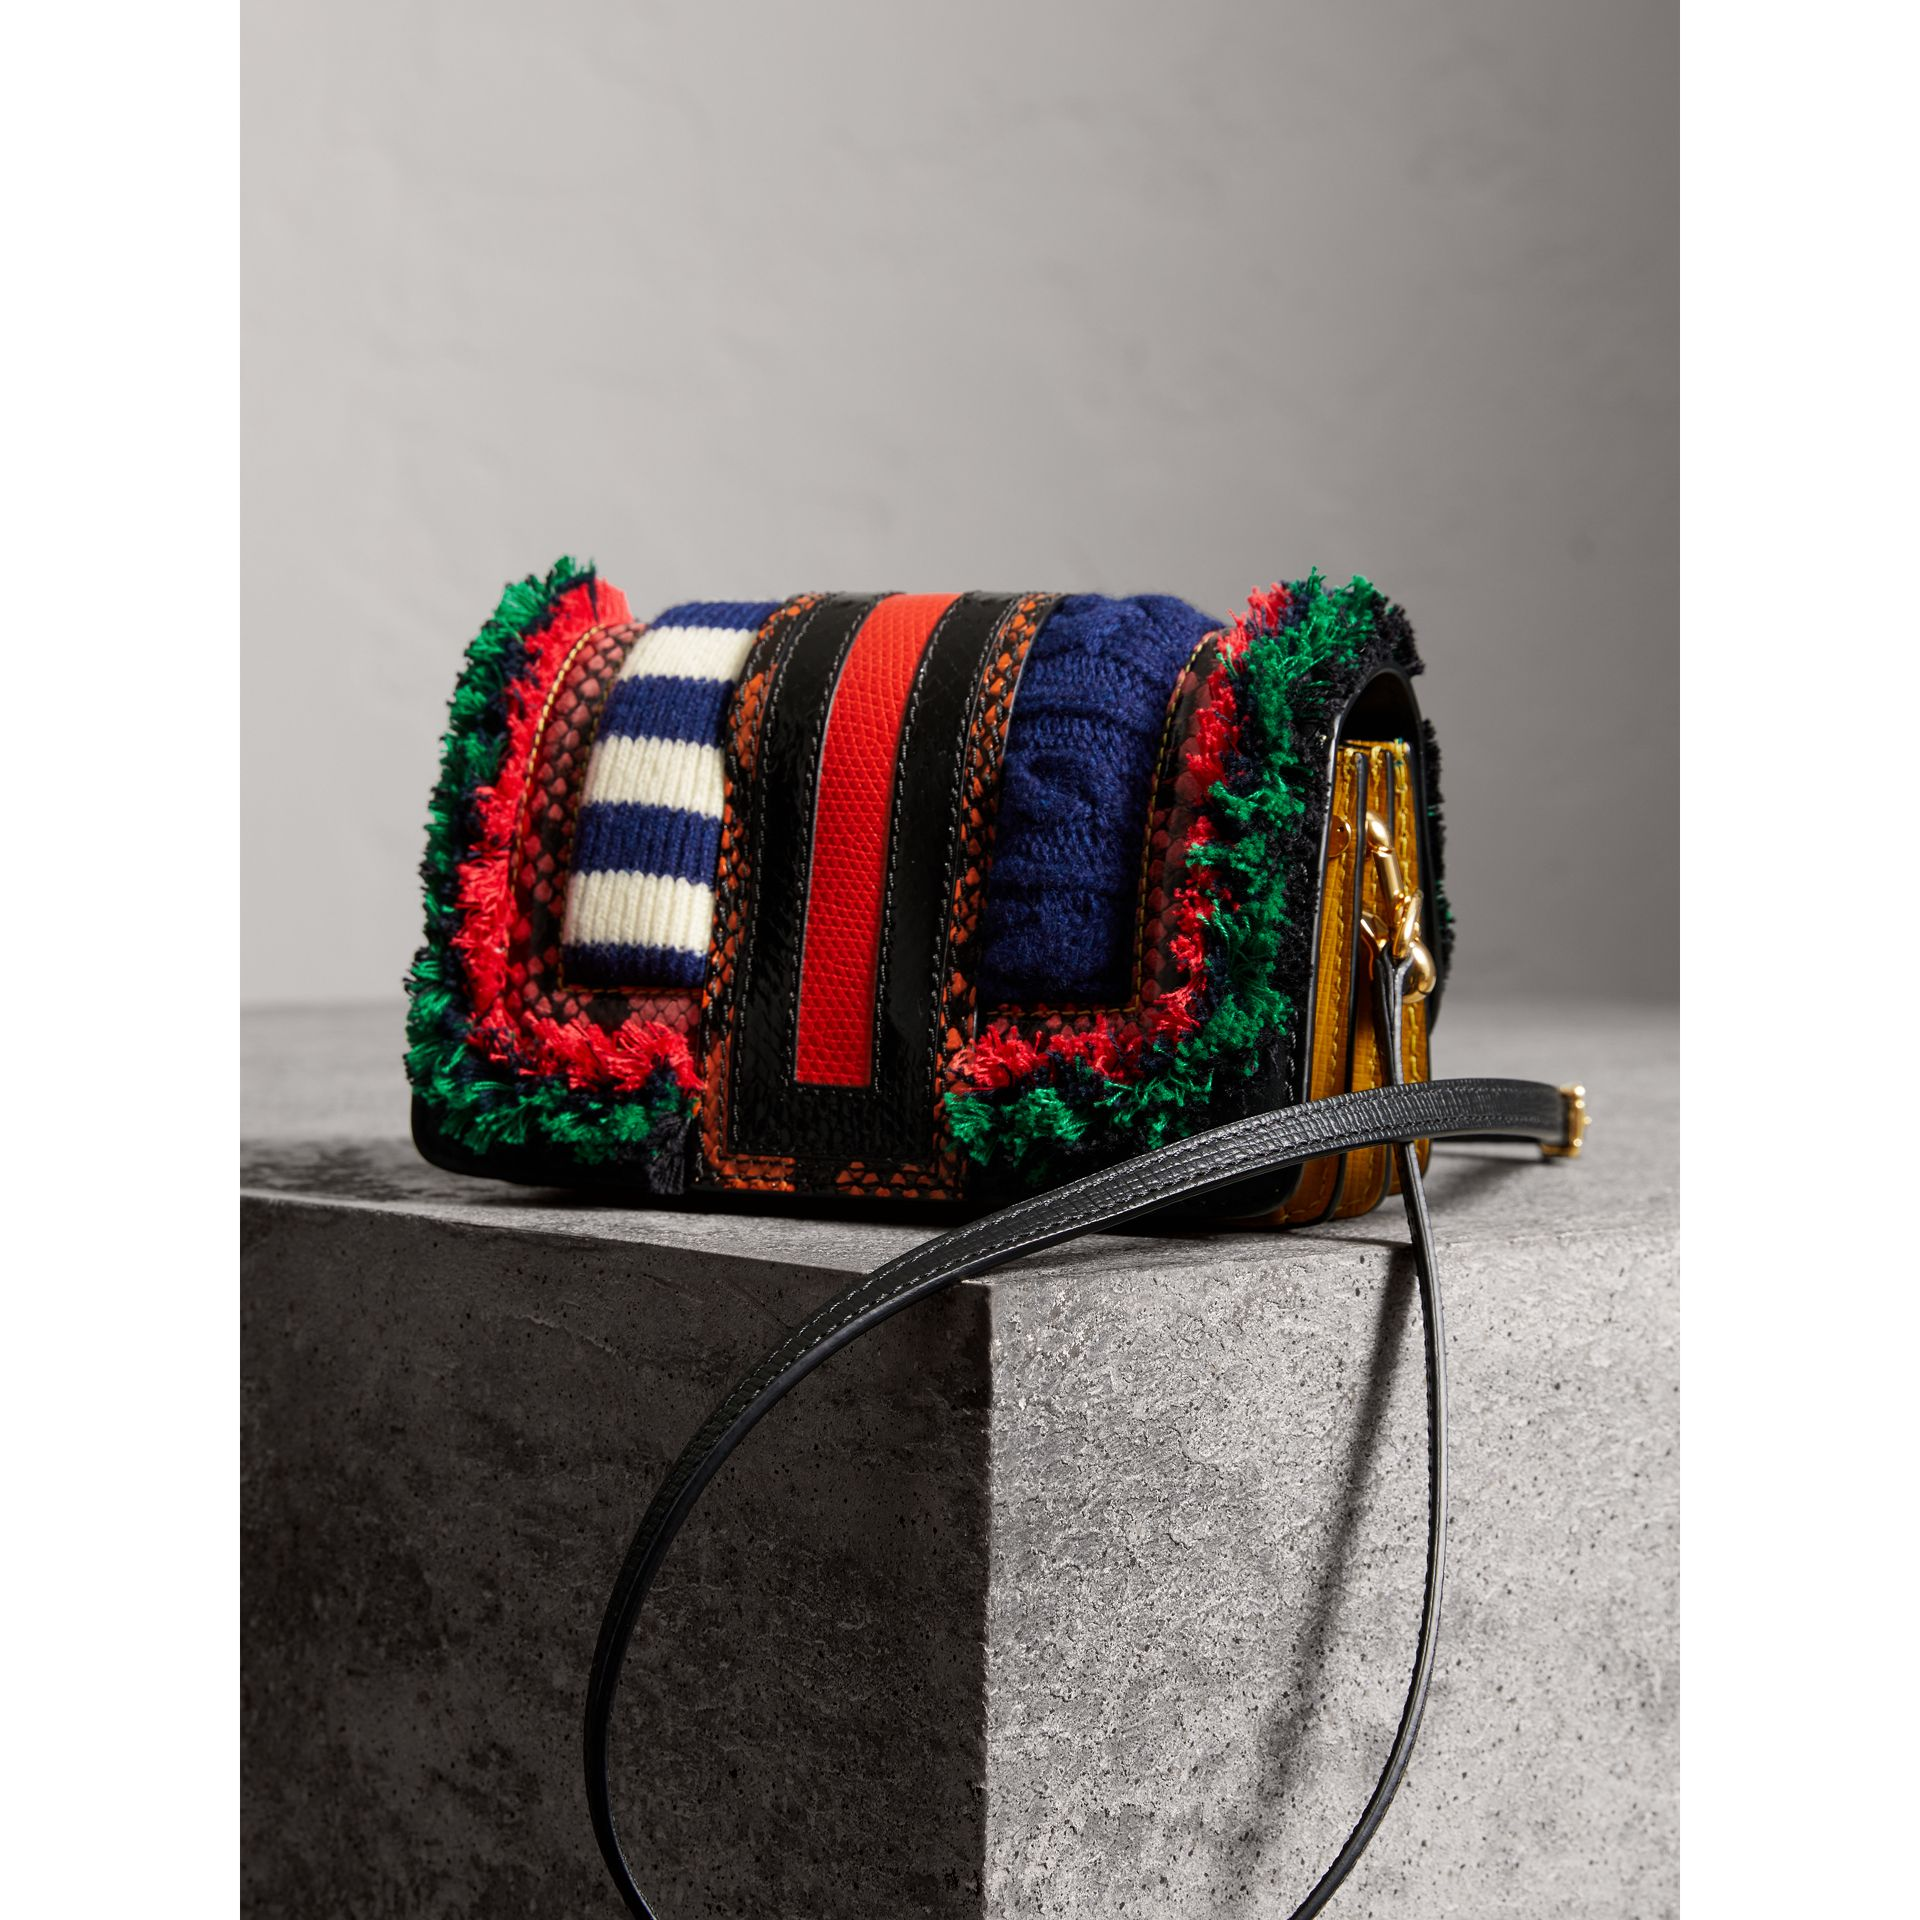 Sac The Patchwork en cuir exotique et maille de laine (Multicolore) - Femme | Burberry - photo de la galerie 4